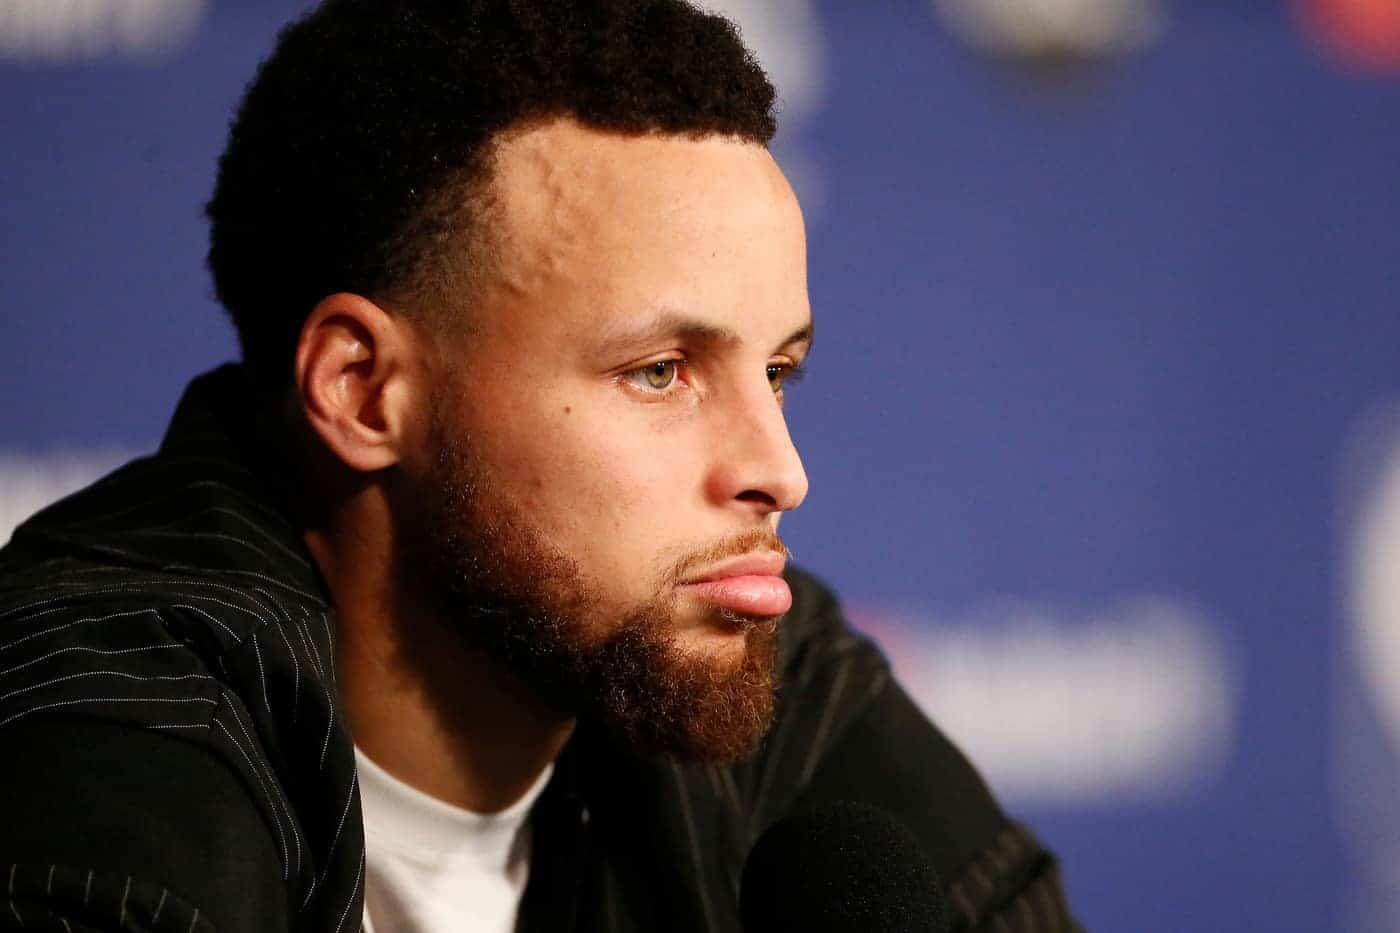 Stephen Curry refuse d'avoir peur de la pression